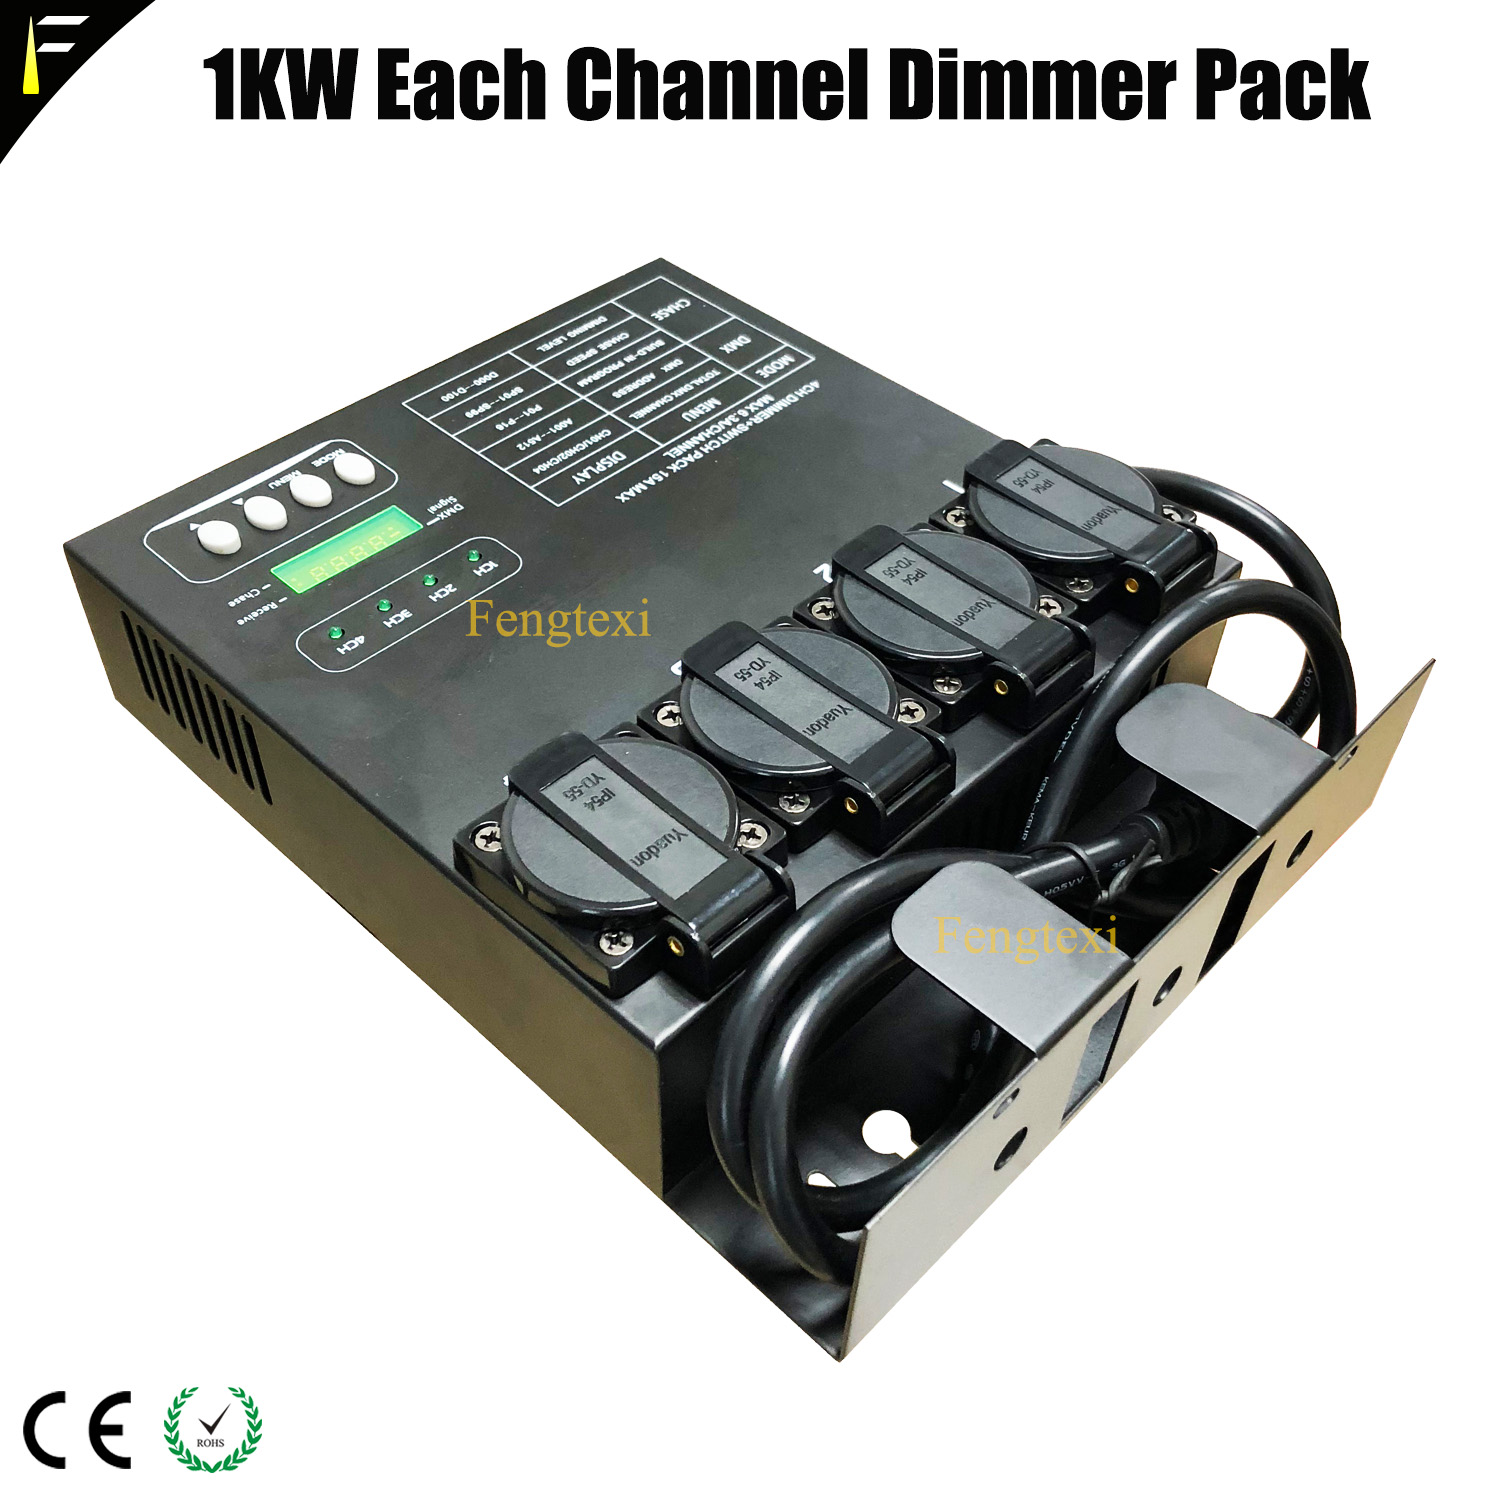 4 Channel DMX Dimmer Multi Switch Pack